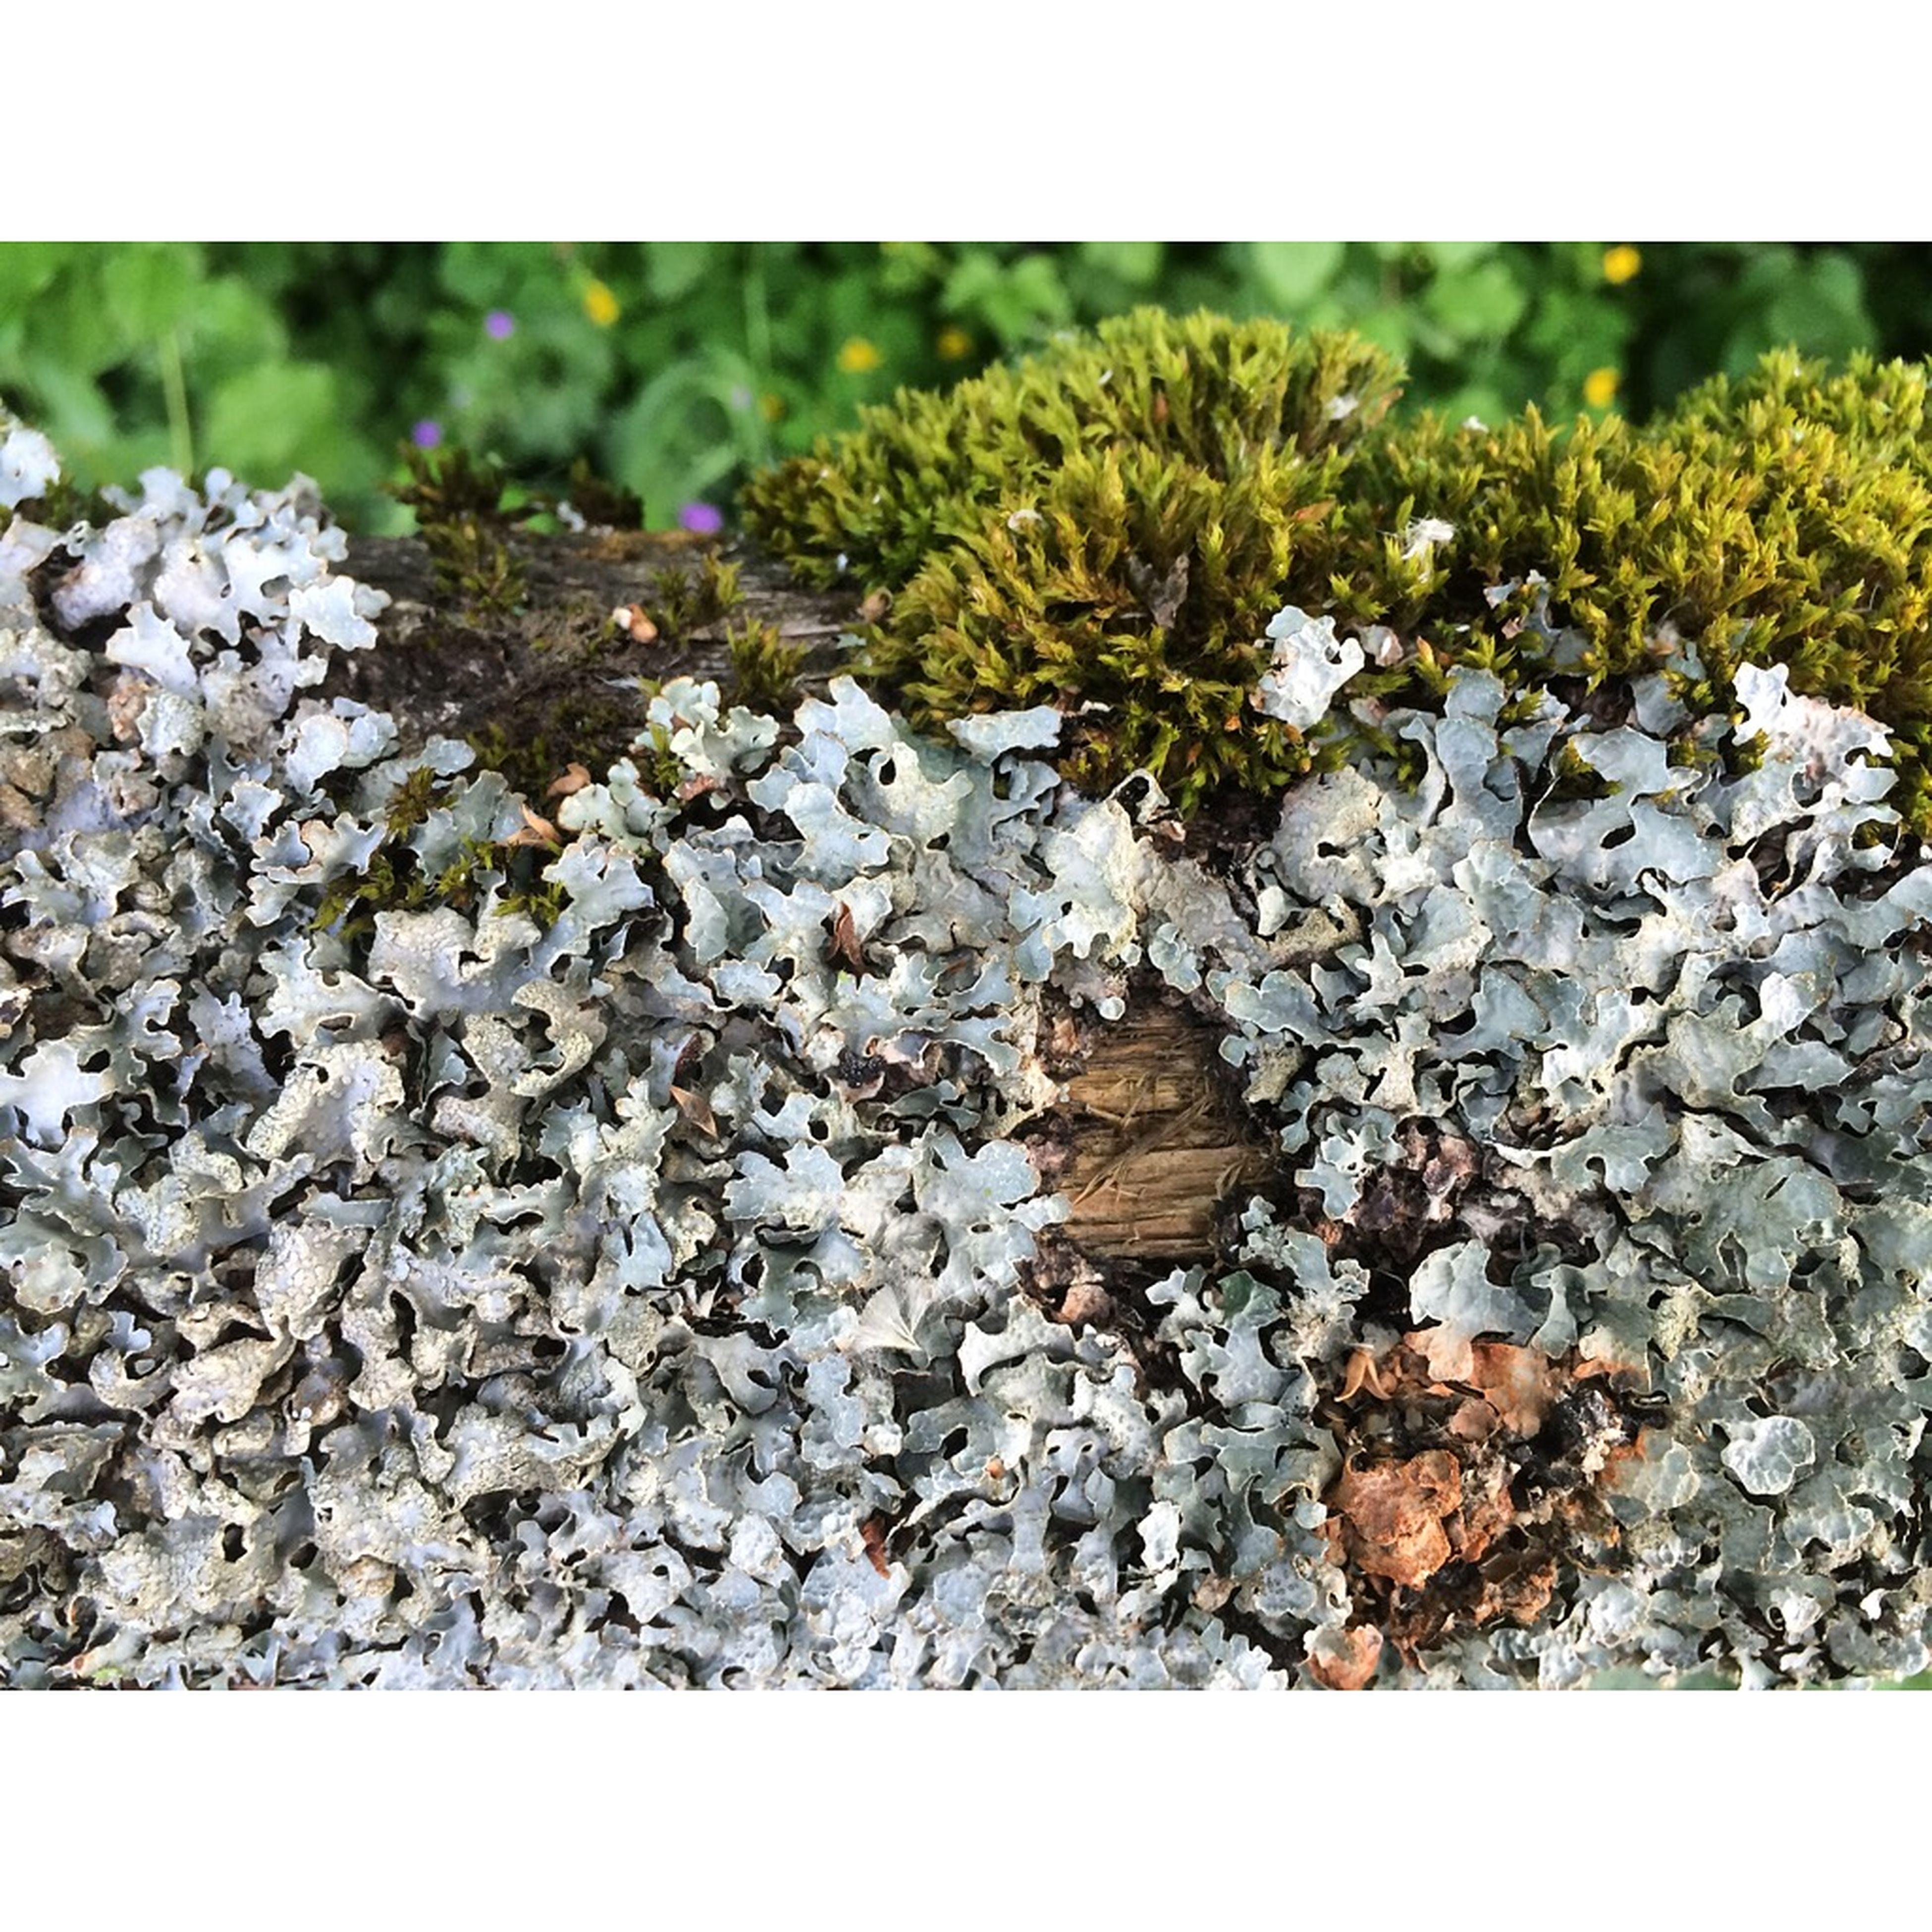 transfer print, auto post production filter, growth, nature, plant, field, tranquility, day, stone - object, rock - object, beauty in nature, close-up, outdoors, selective focus, stone, no people, leaf, textured, rock, fragility